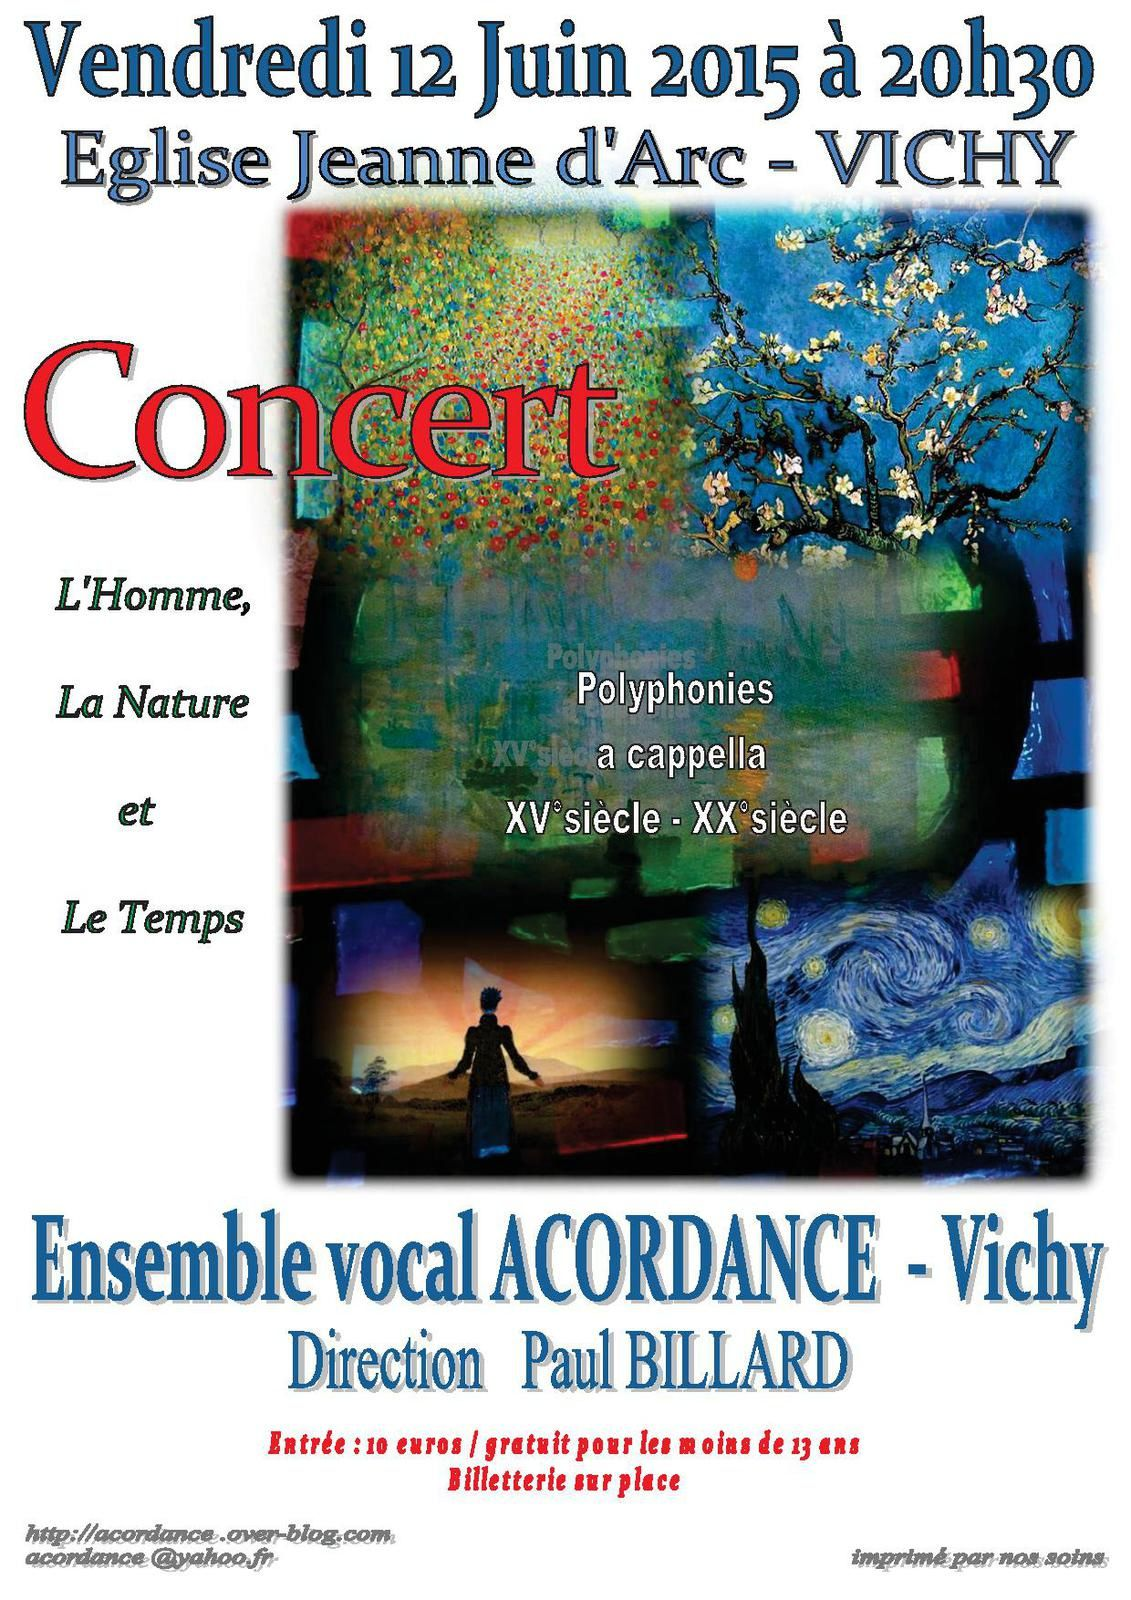 PROCHAINS CONCERTS de l'ensemble vocal ACORDANCE